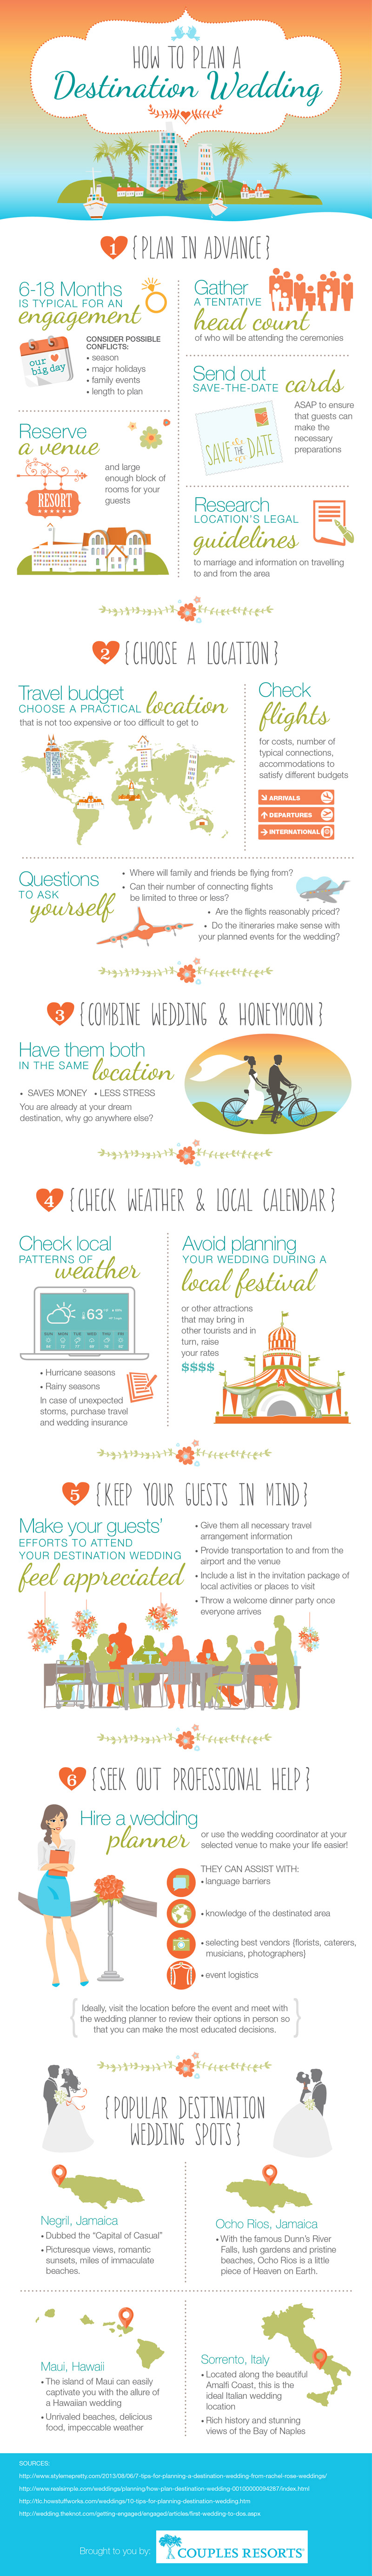 How To Plan A Destination Wedding Infographic Visualistan